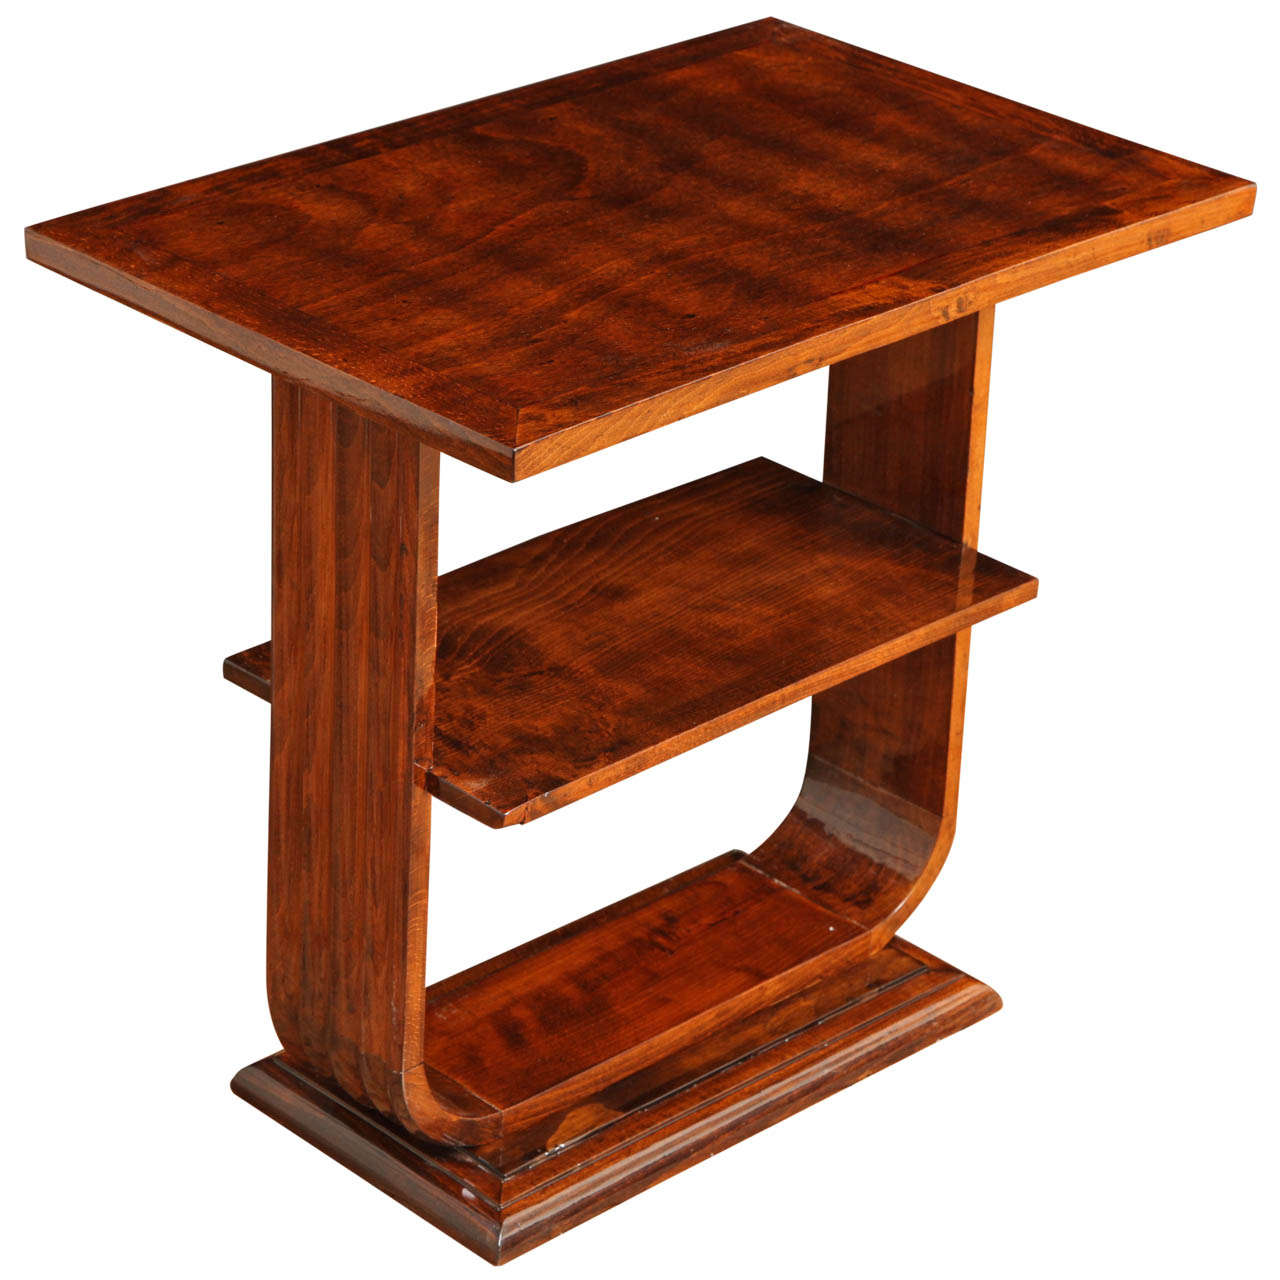 deco side table with shelves at 1stdibs